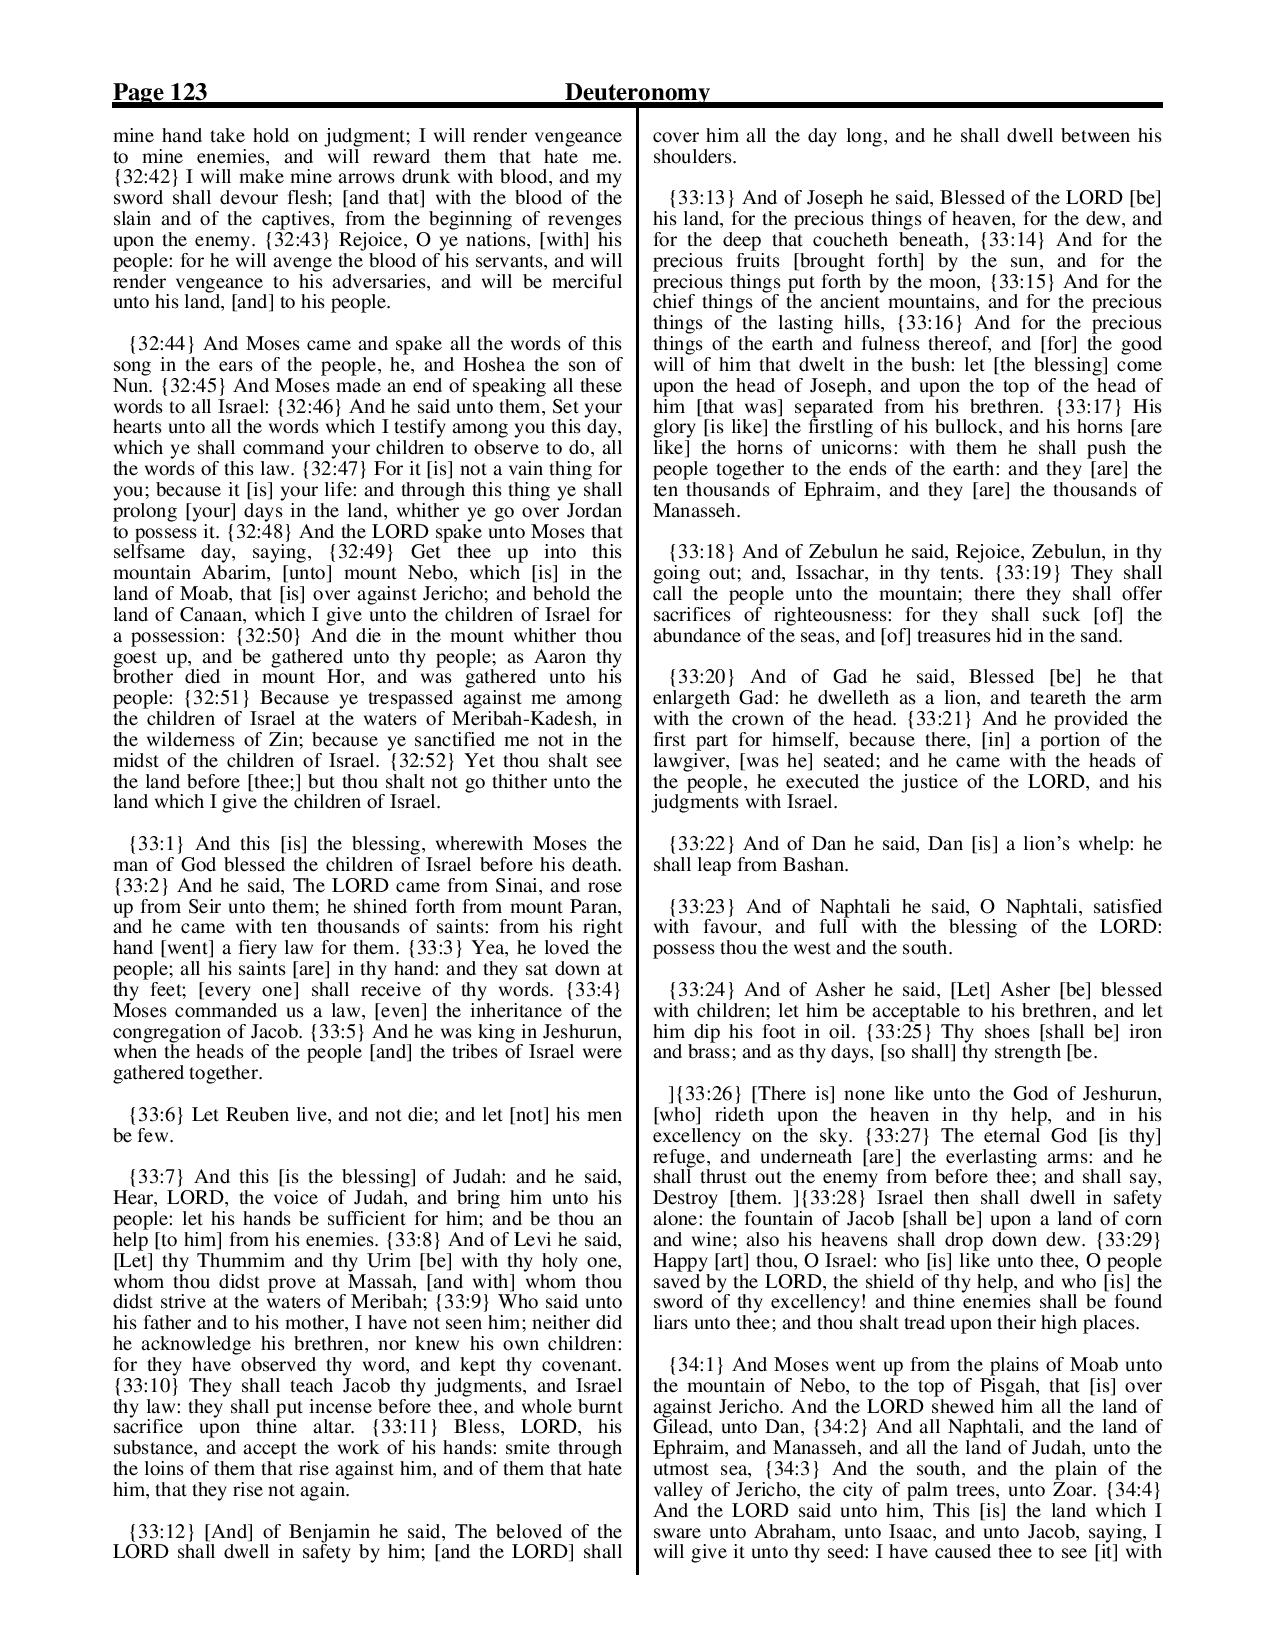 King-James-Bible-KJV-Bible-PDF-page-144